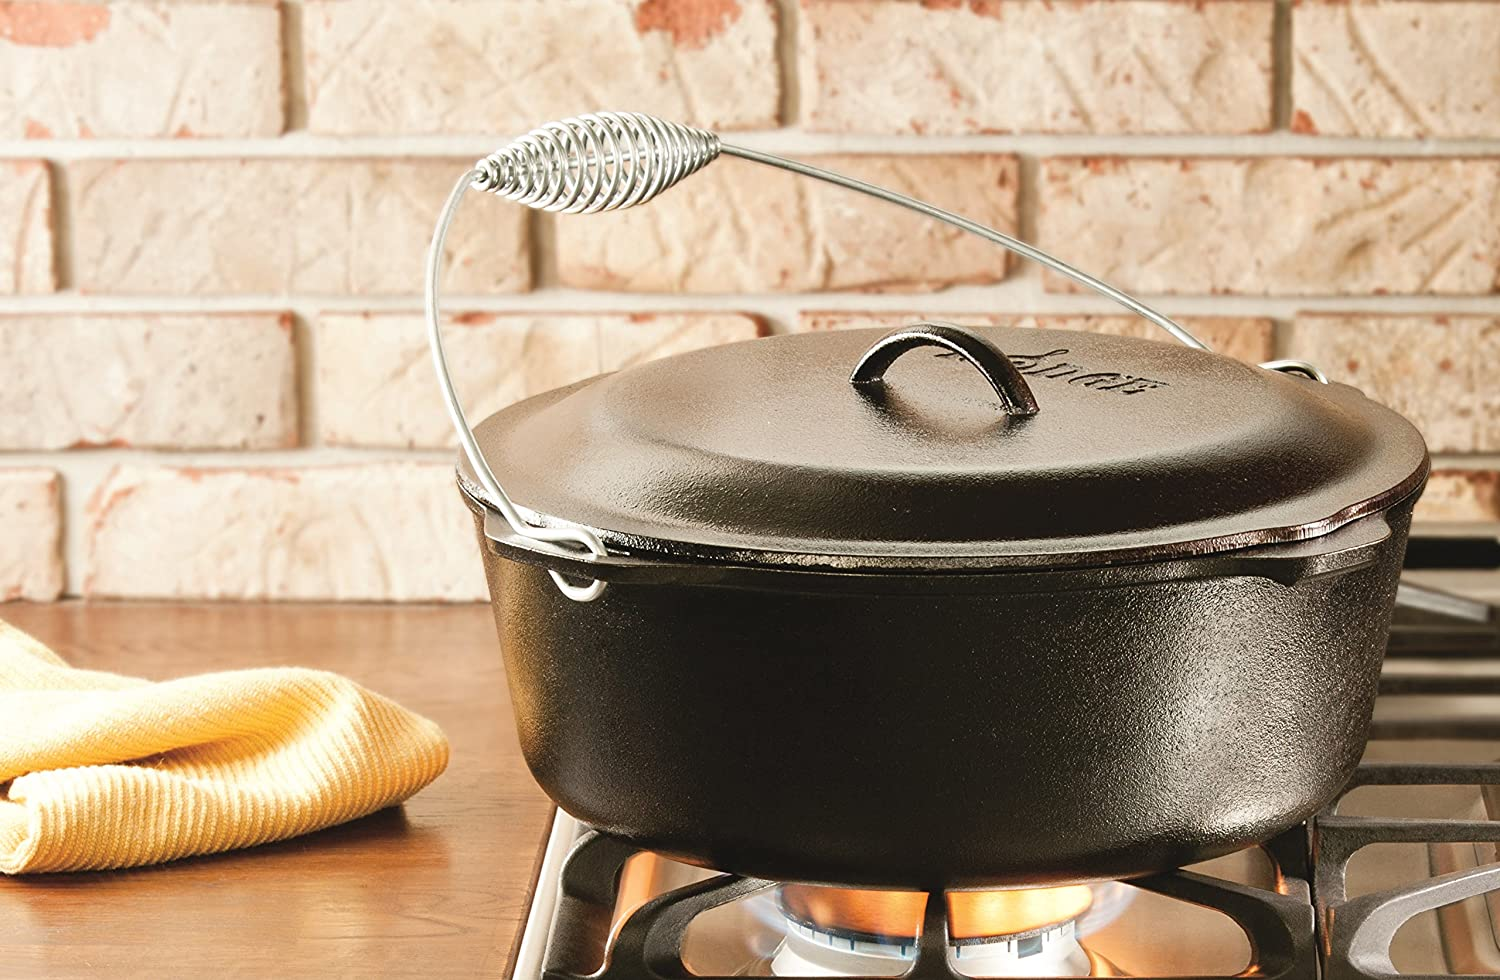 Lodge 8.52 litre / 9 quart Pre-Seasoned Cast Iron Dutch Oven/Casserole Dish (with Spiral Bail Handle)